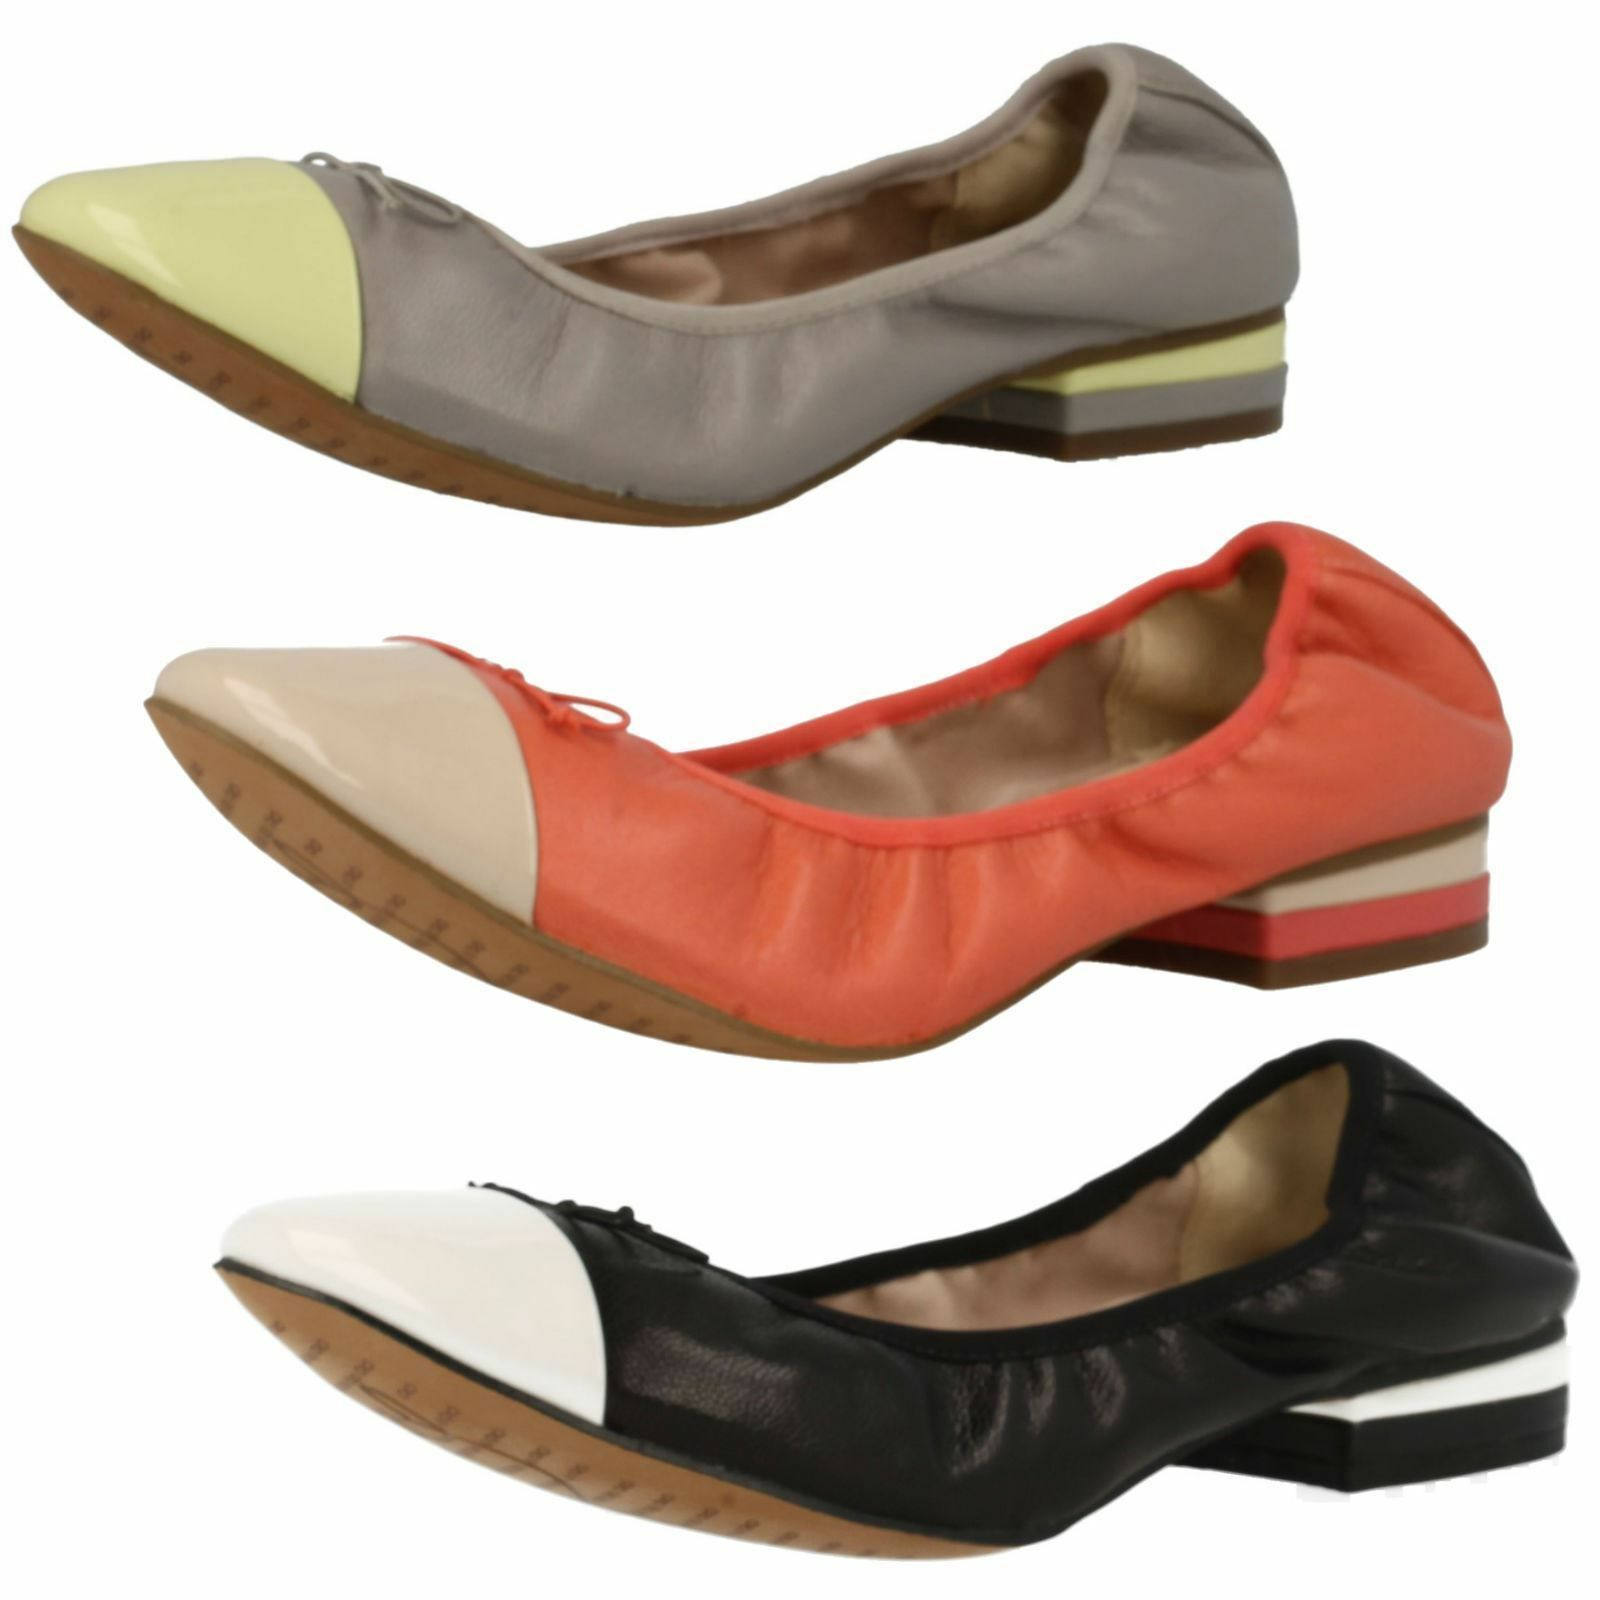 Femmes SOLDE CLARKS fou Robe à enfiler cuir chaussures style ballerine